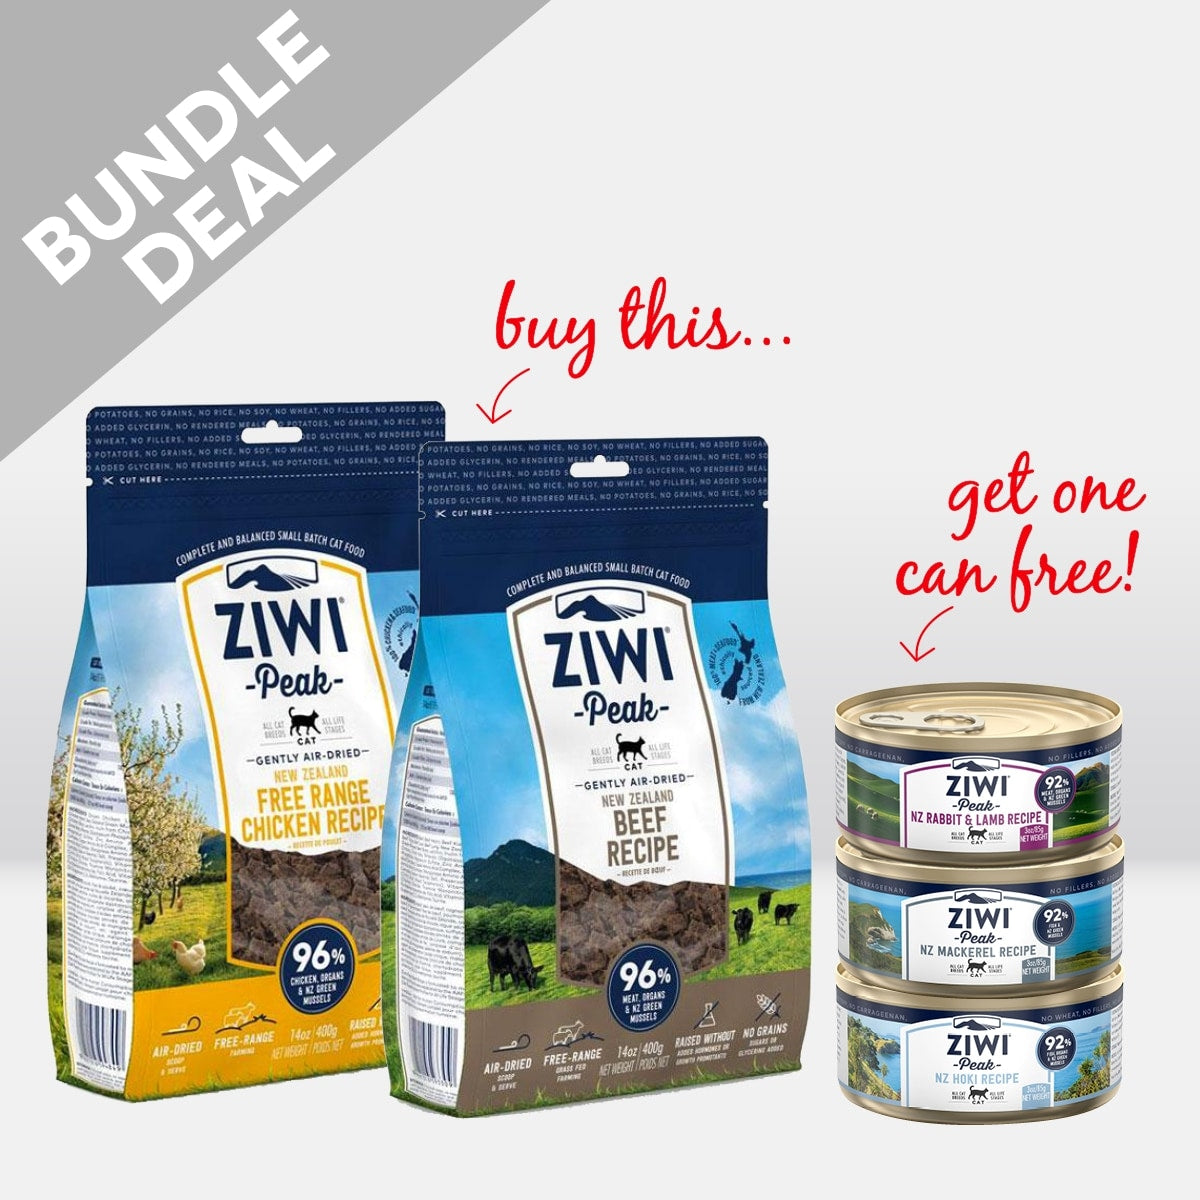 Ziwi peak for Cats DEAL